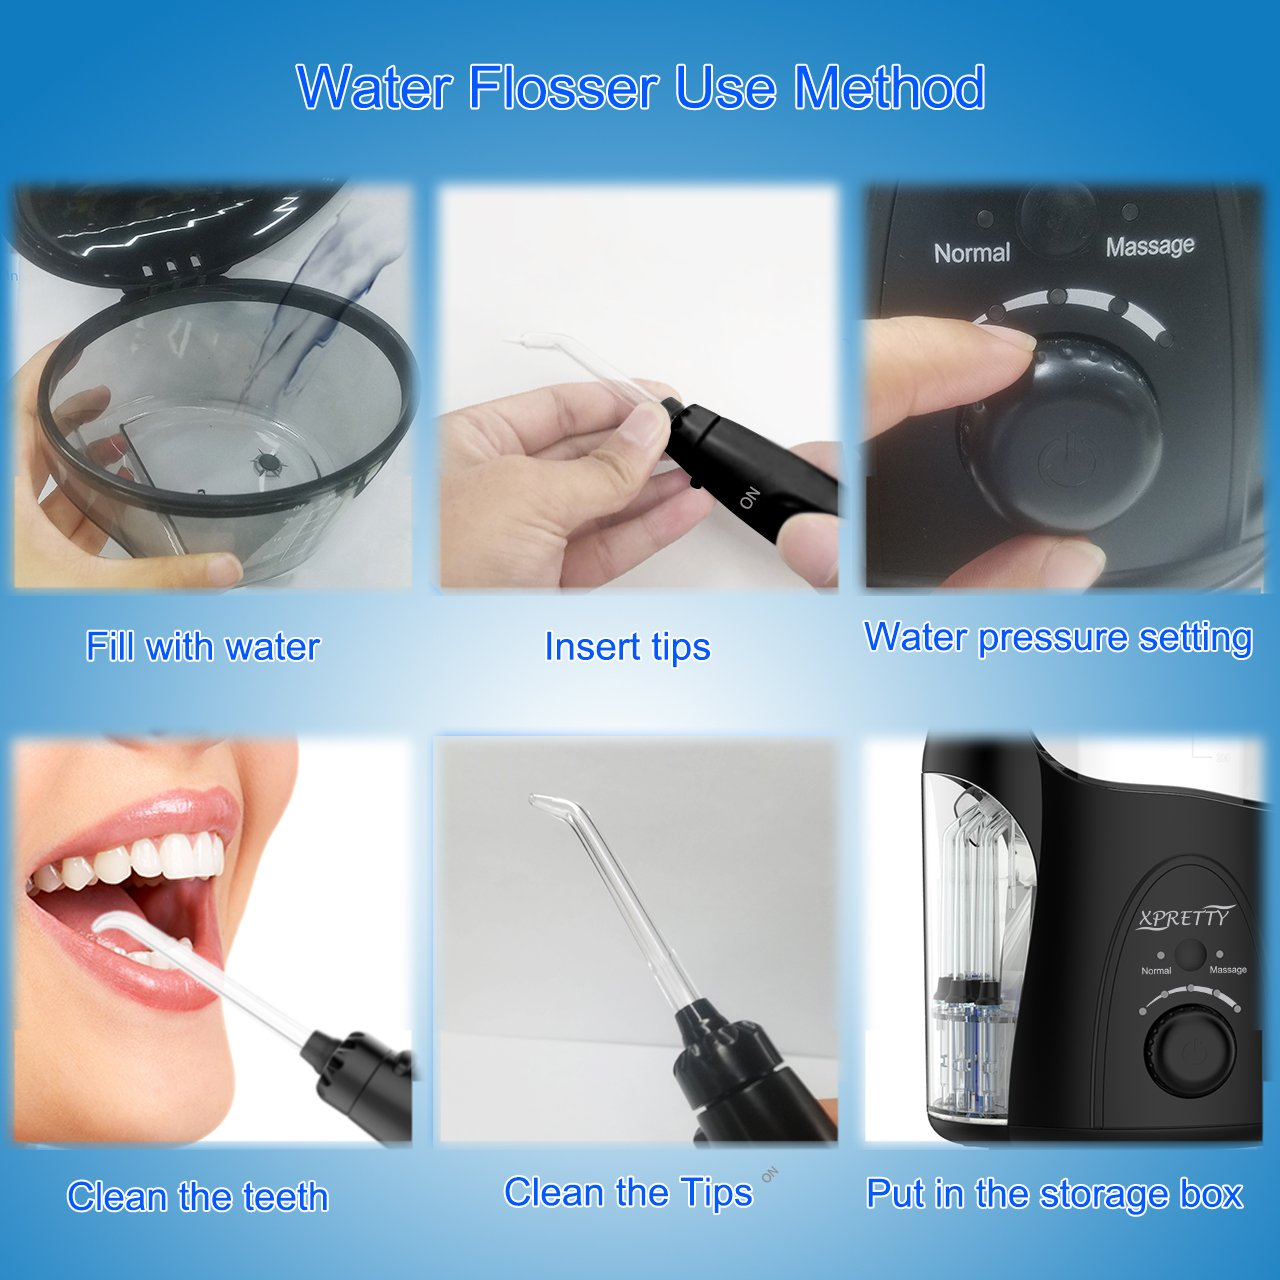 Water Flosser, XPretty 600ml Reservoir Professional Family Oral Irrigator with Adjustable Pressure Setting, Water Pick Dental Flosser with 7 Tips For Braces, Implants, Bridges, Global Voltage by XPretty (Image #3)